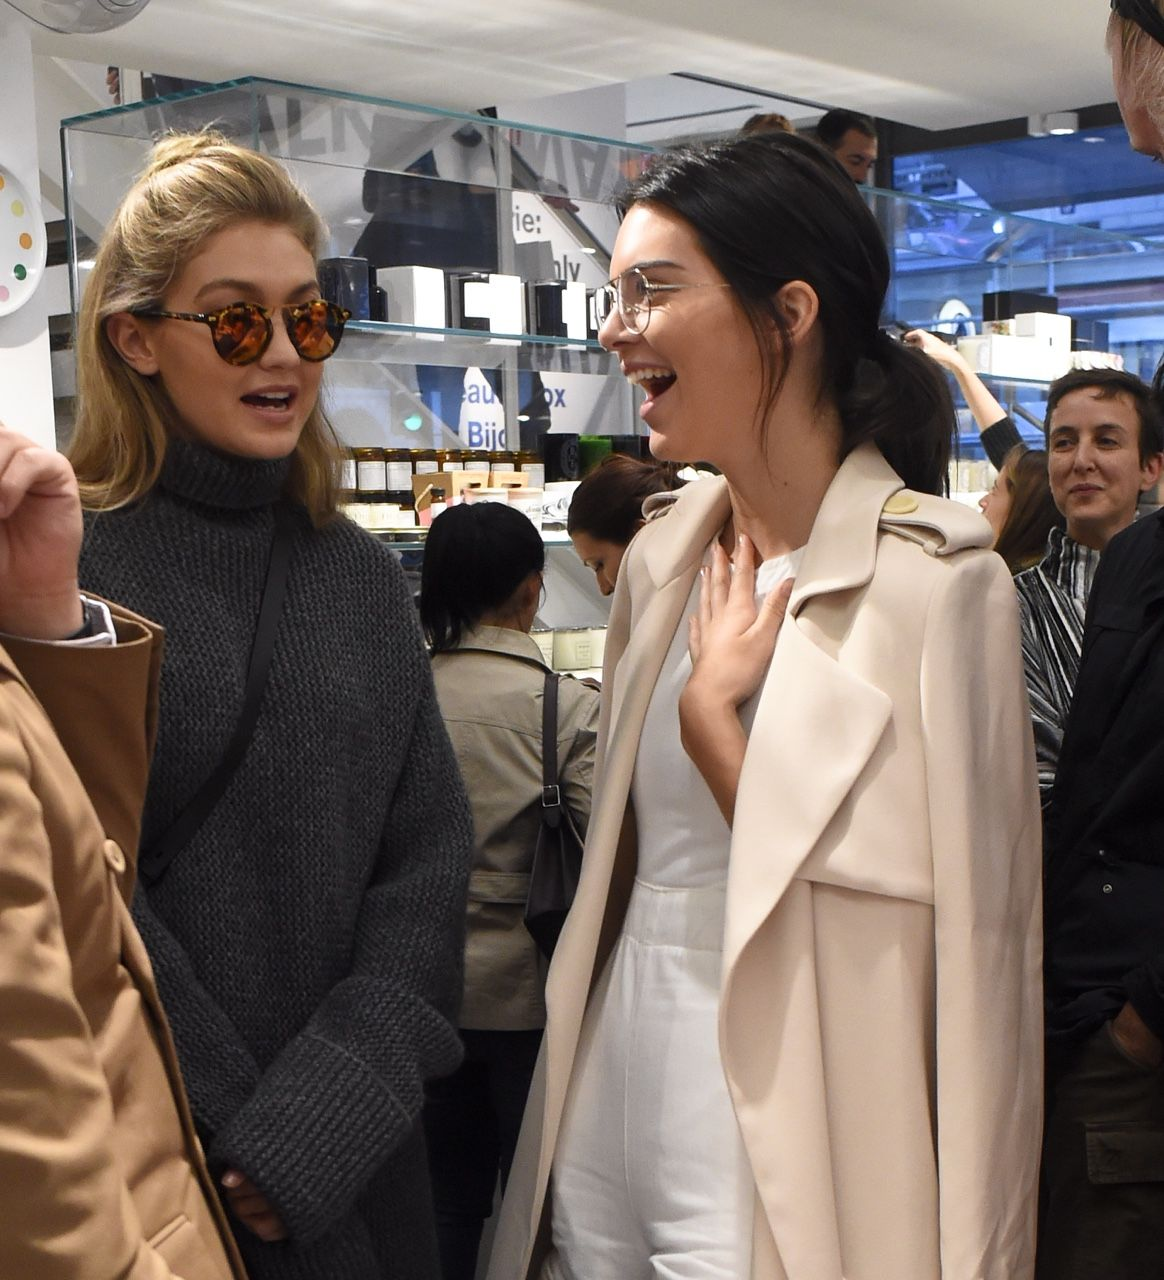 730d1ca3749 re-karl  keeping-up-with-the-jenners  Kendall at colette store today FASHION MODERN COFFEE  BLOG. ASK ME TO CHECK OUT YOUR BLOG xx